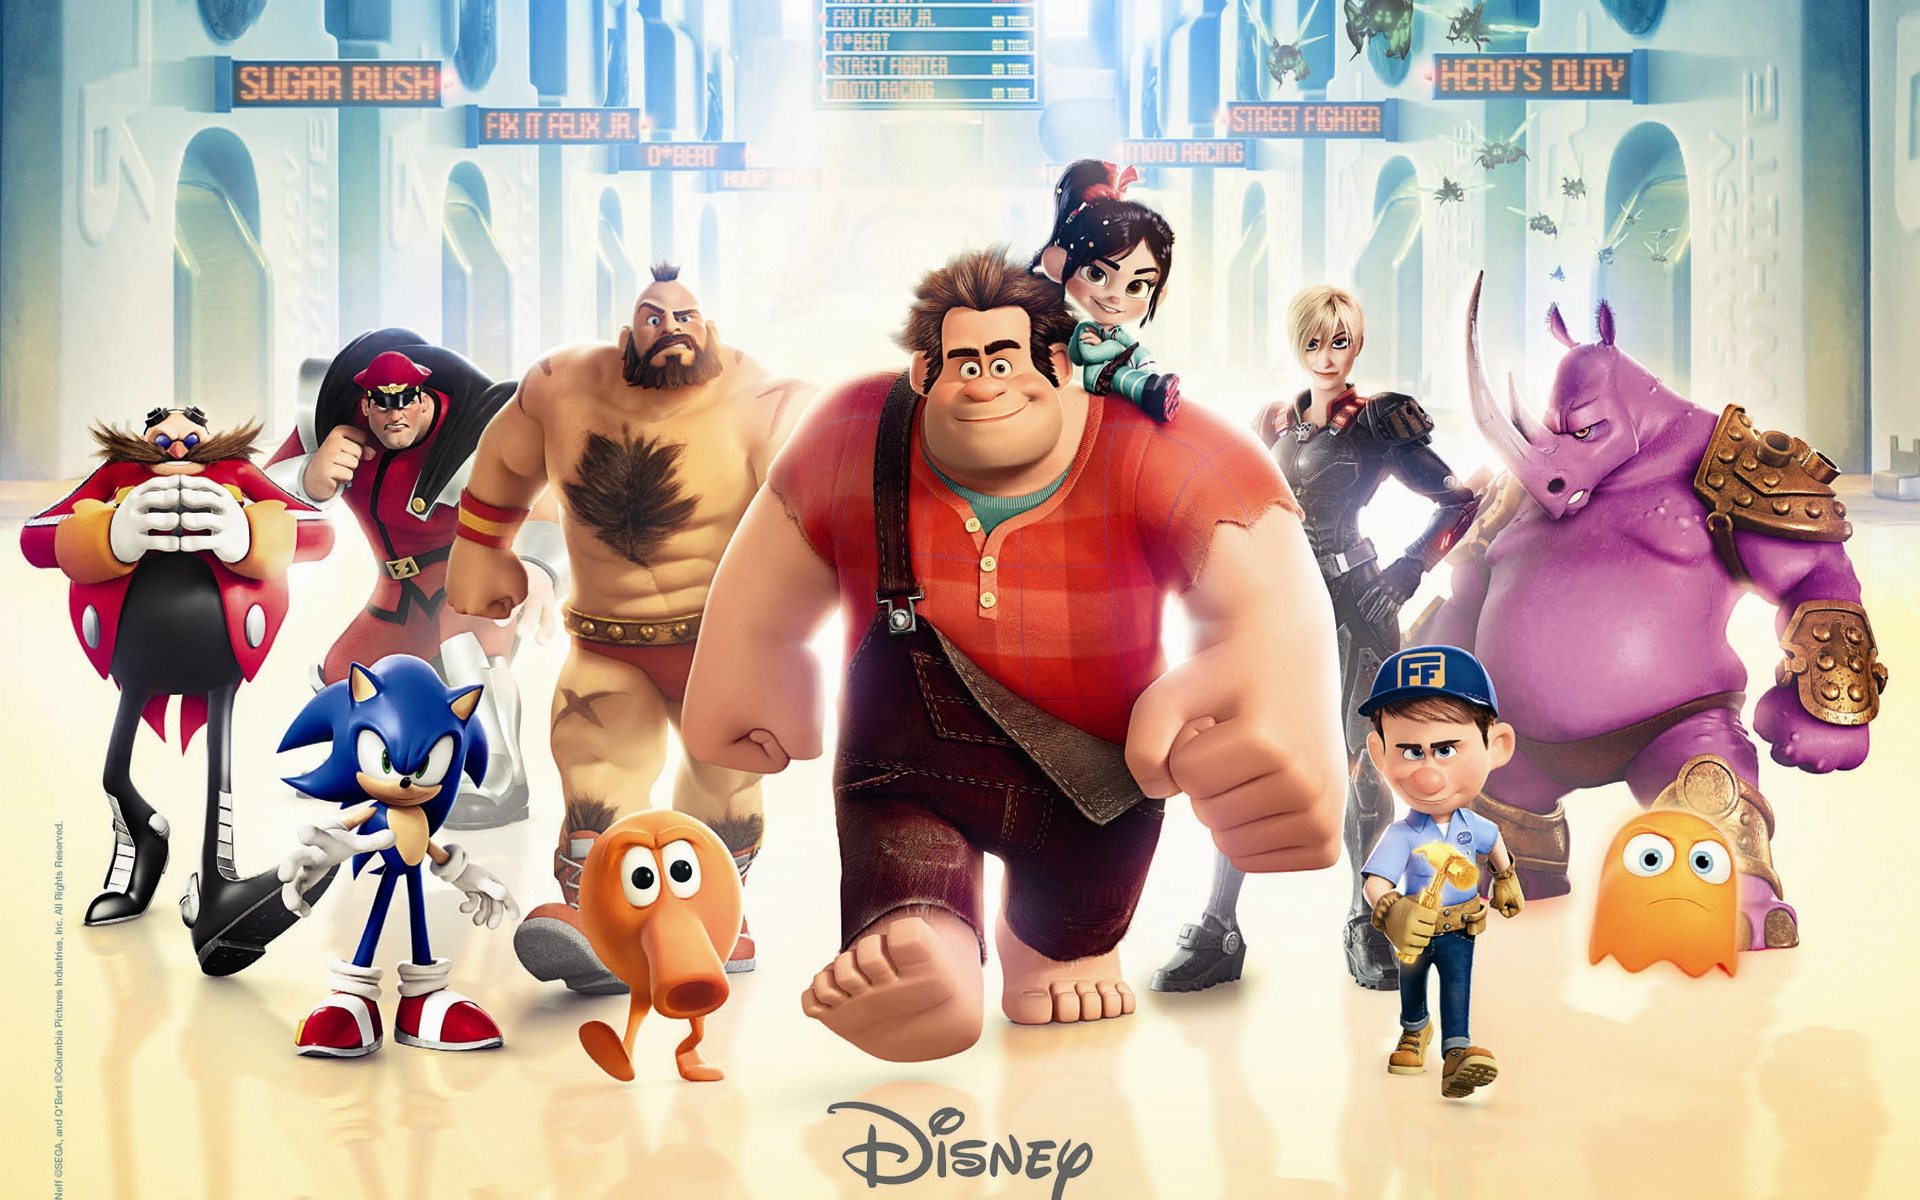 'Wreck-It Ralph' May Be Getting a Sequel